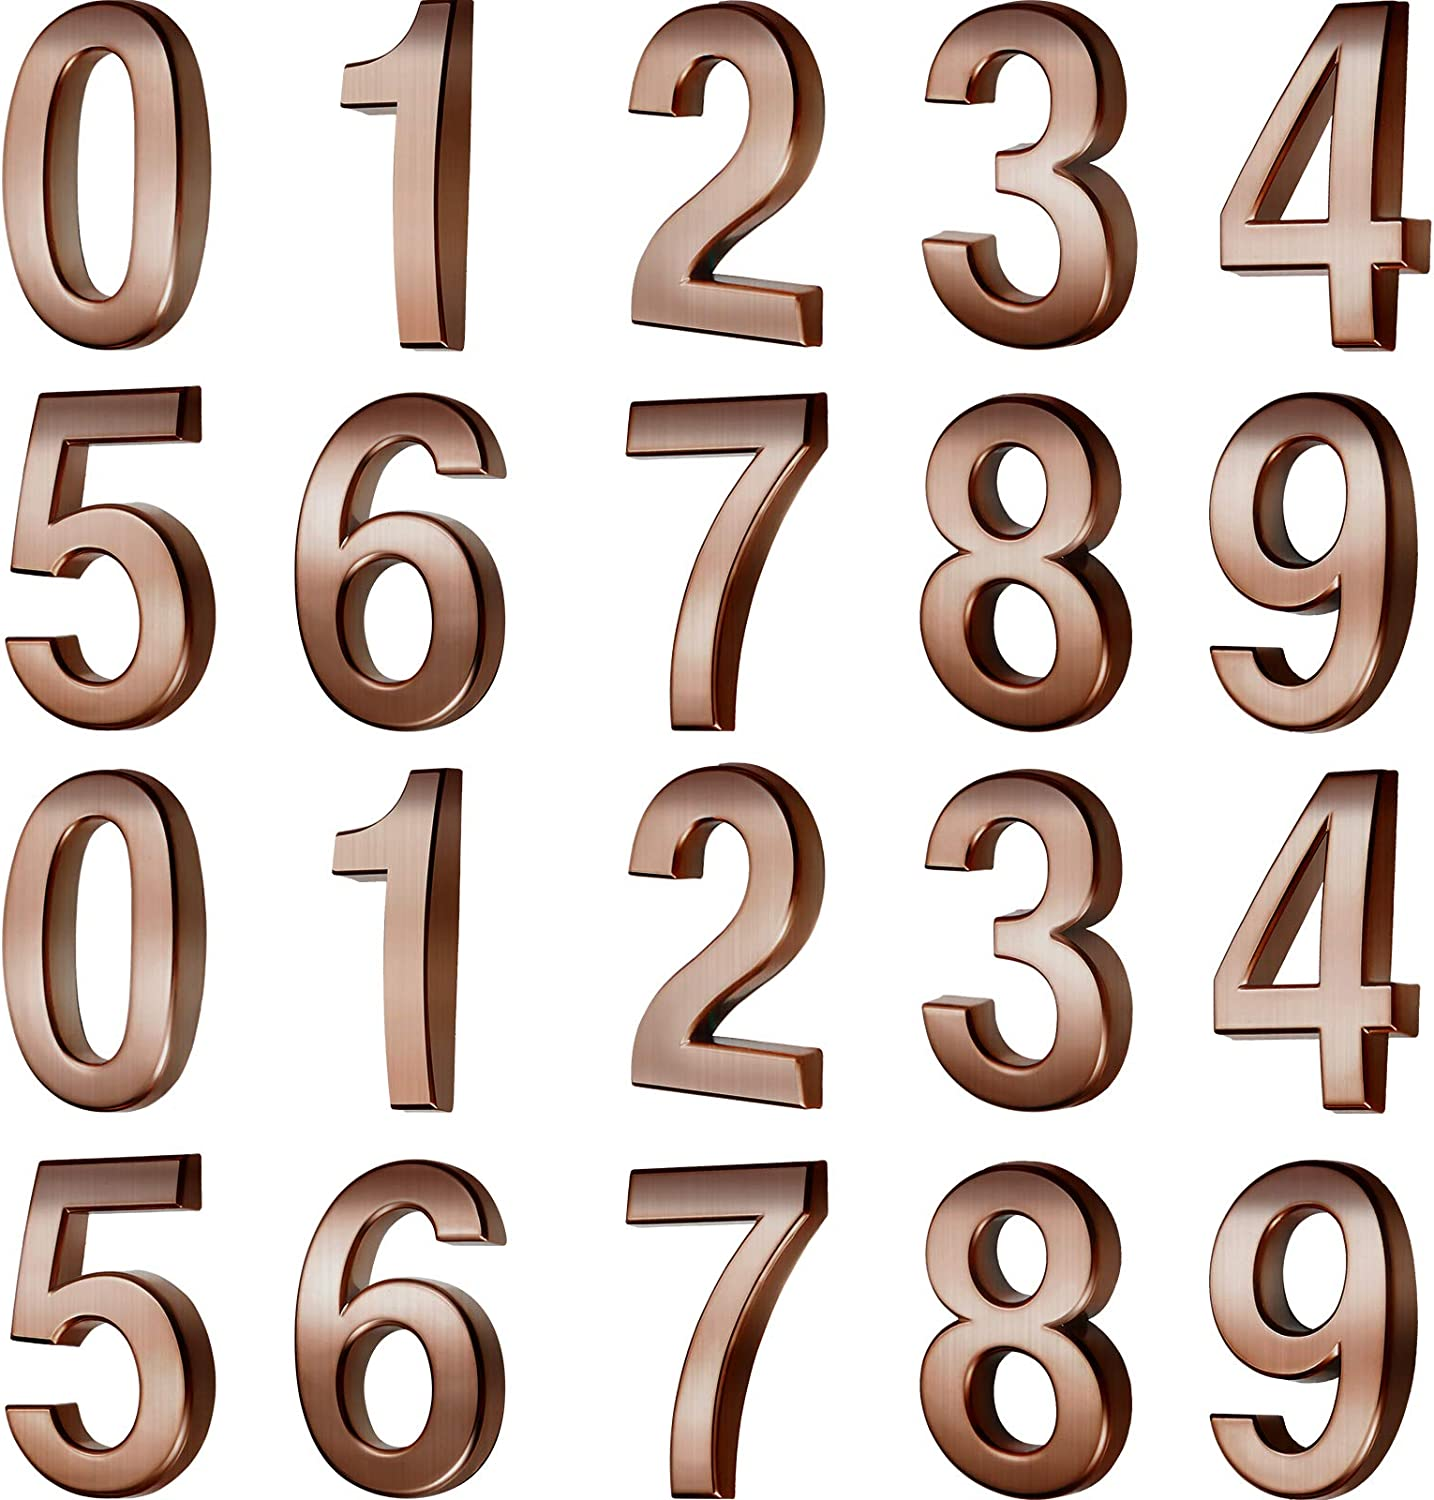 20 Pieces Mailbox Numbers 0 - 9 Address Numbers Self Adhesive Door Numbers Reflective Mailbox Numbers for House Mailbox (3 Inch, Copper-Colored)